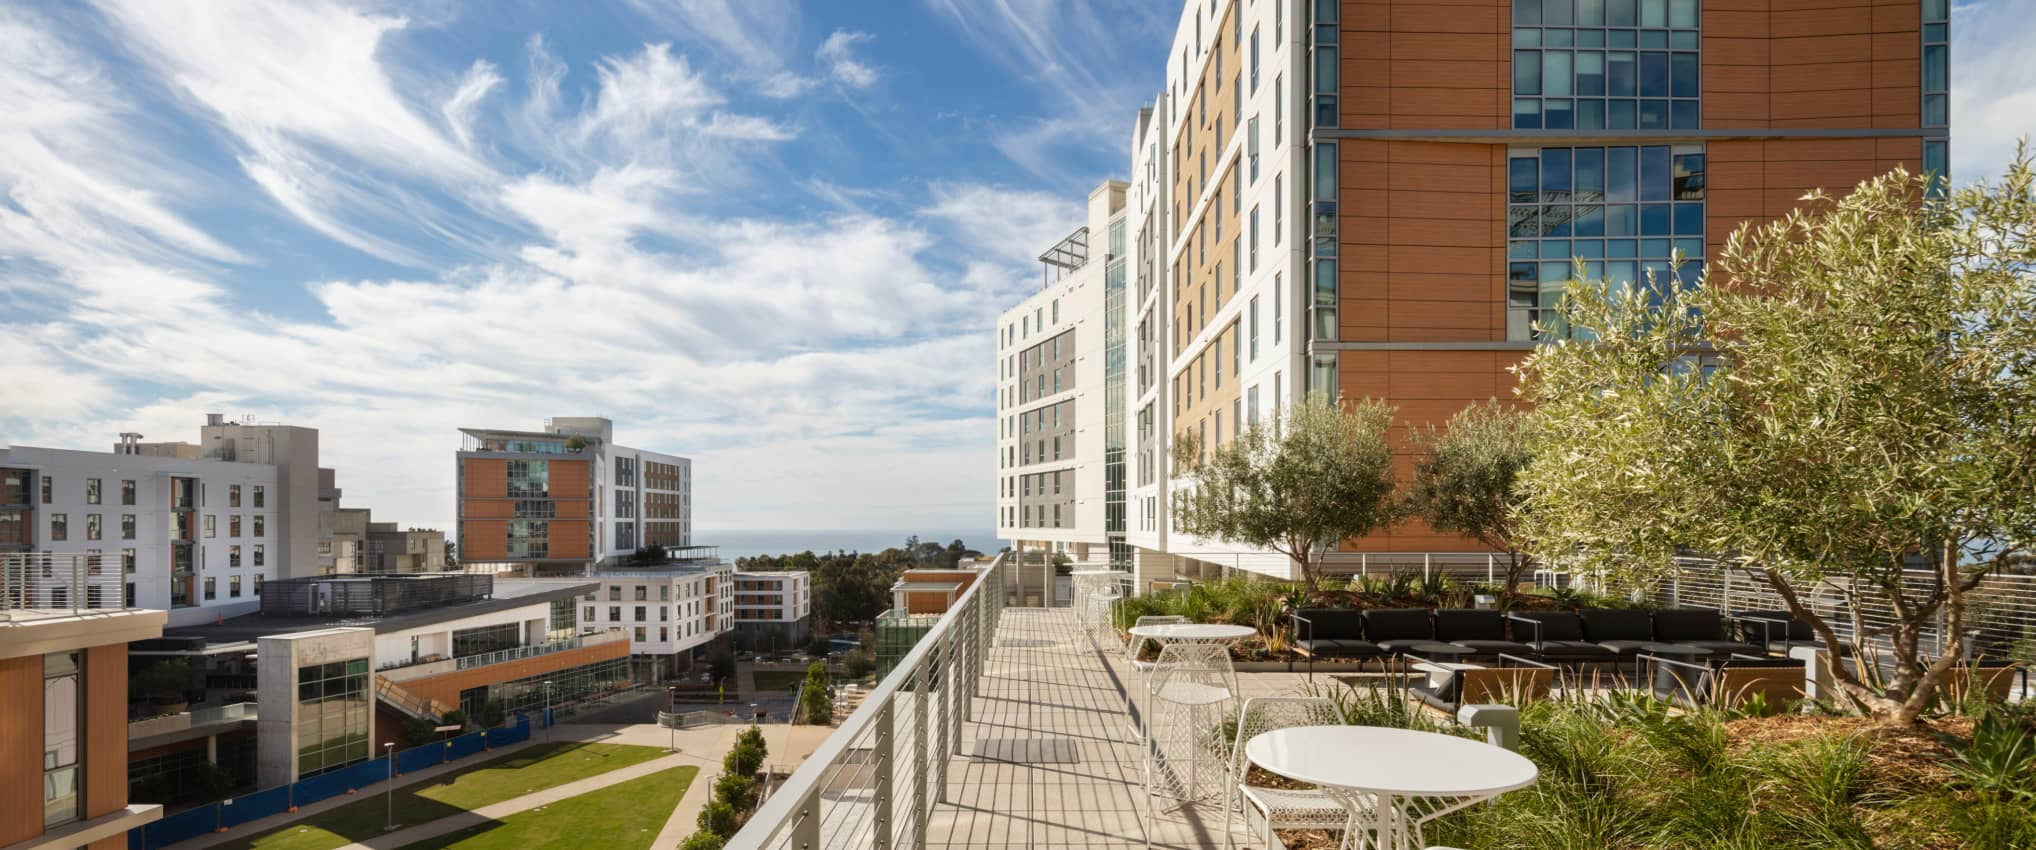 UCSD North Torrey Pines Living and Learning Neighborhood